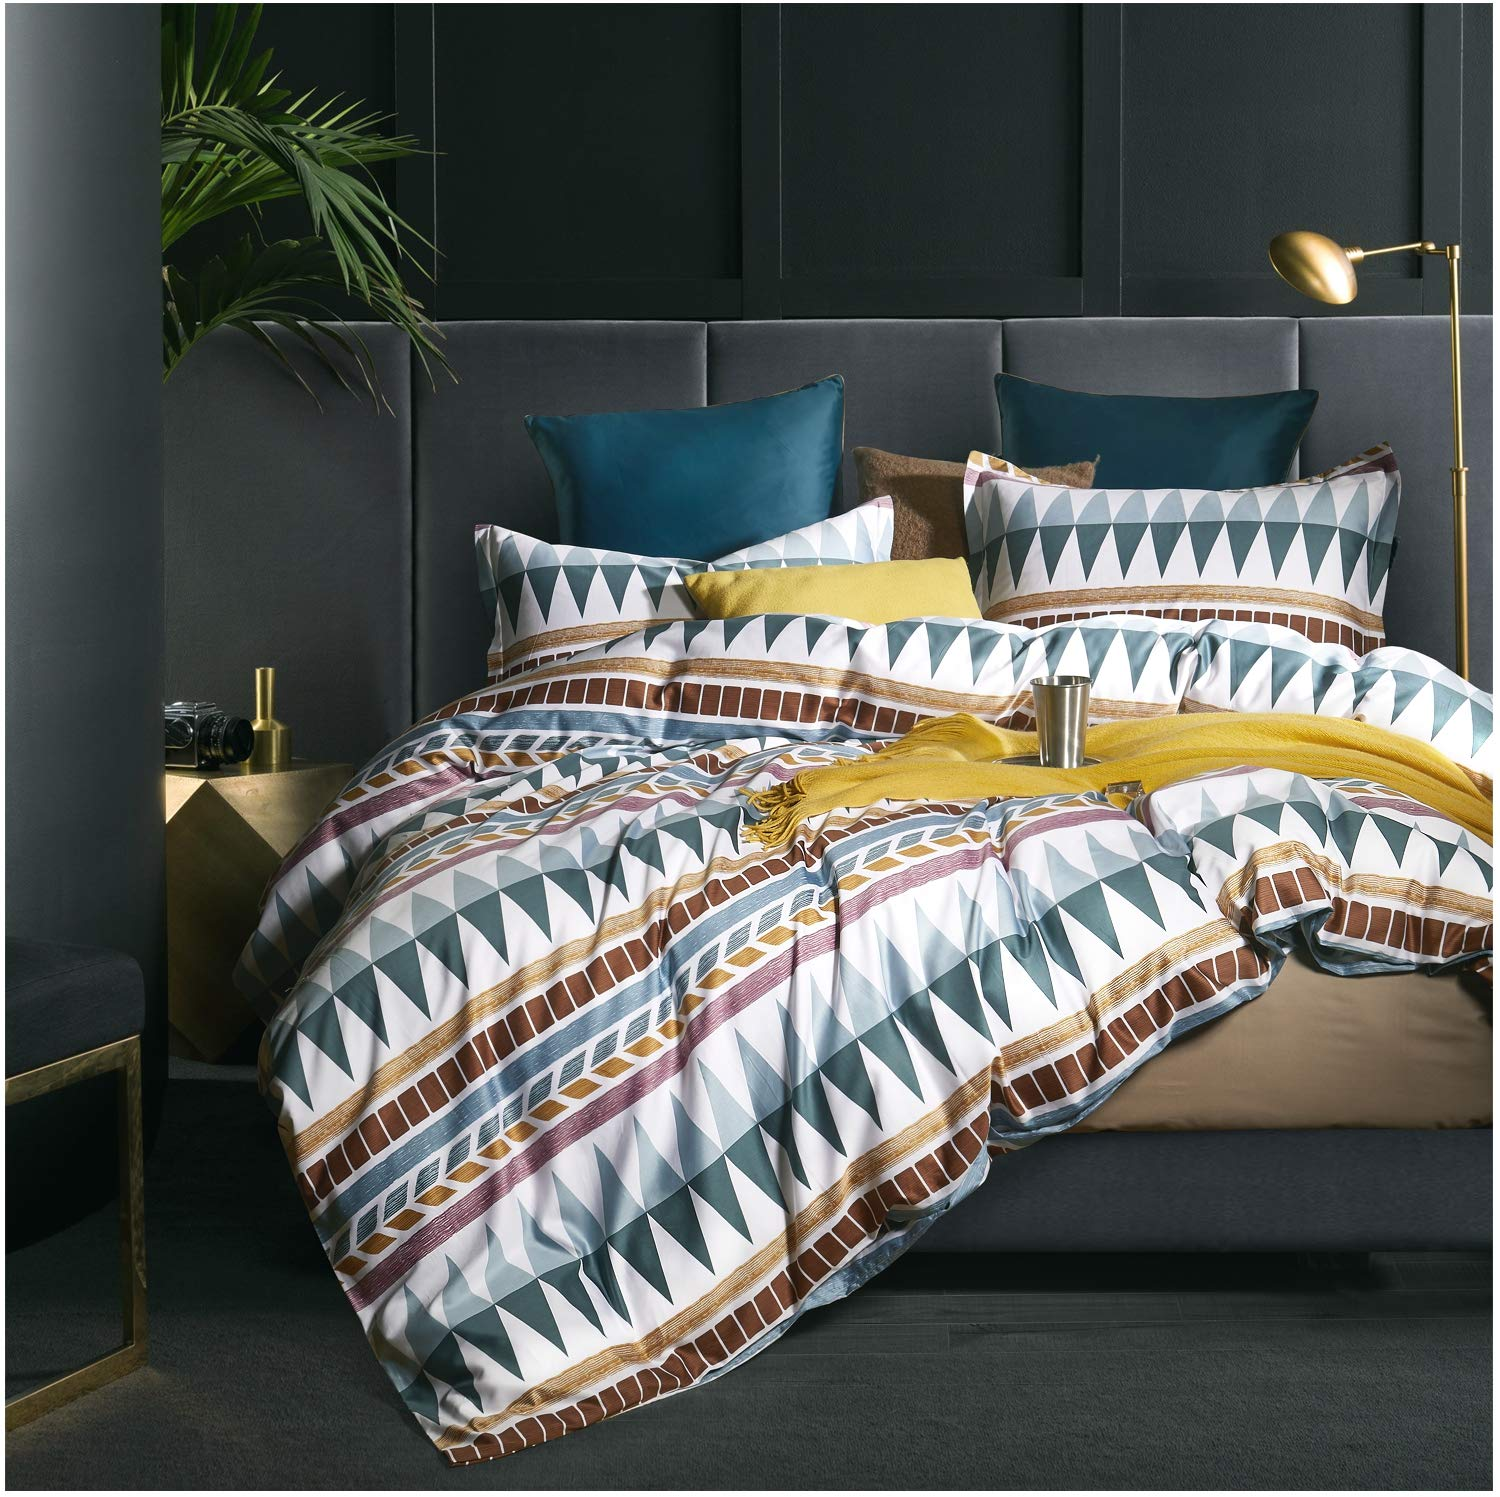 Bohemian Duvet Cover Striped Ethnic Boho Reversible Southwestern 400TC Cotton Bedding 3pc Set Navy White Orange Modern Geo Aztec Print (King, Teal Rust)